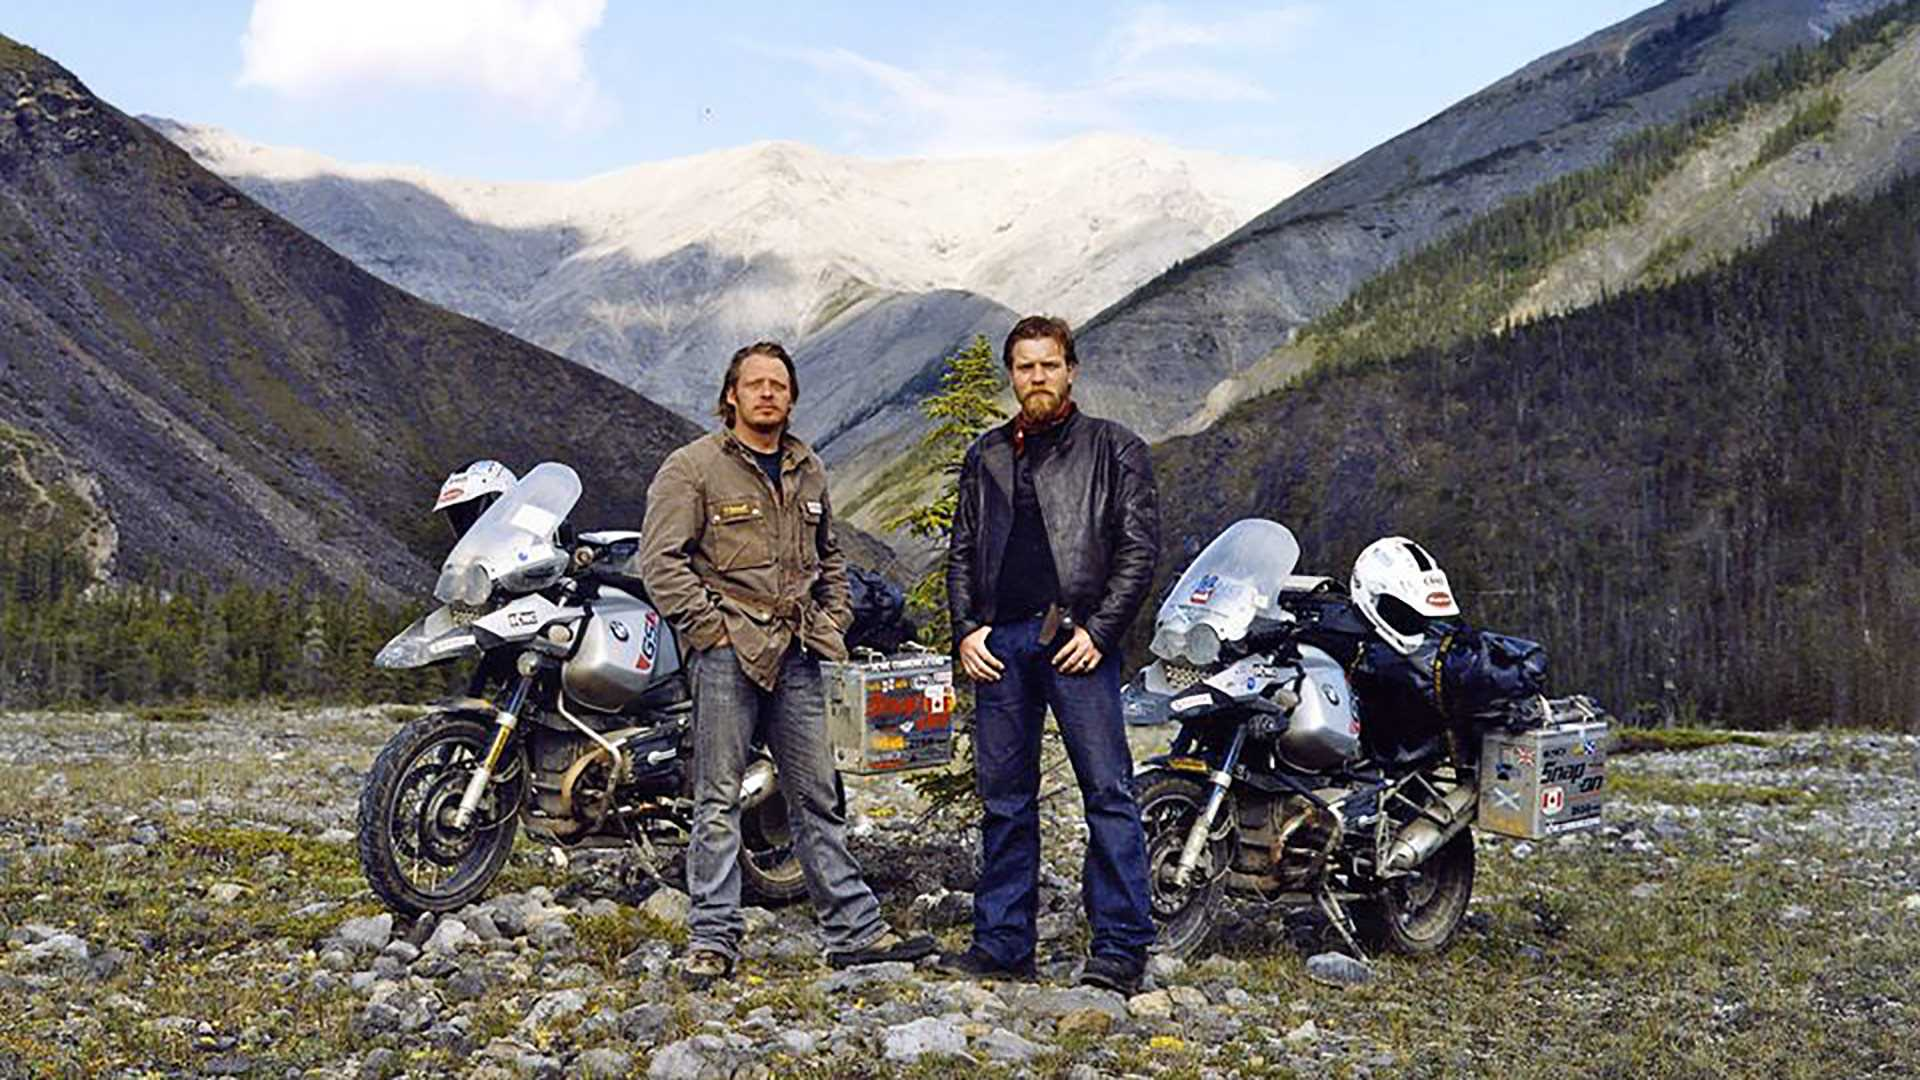 Charley Boorman Confirms Long Way Up Is In The Making